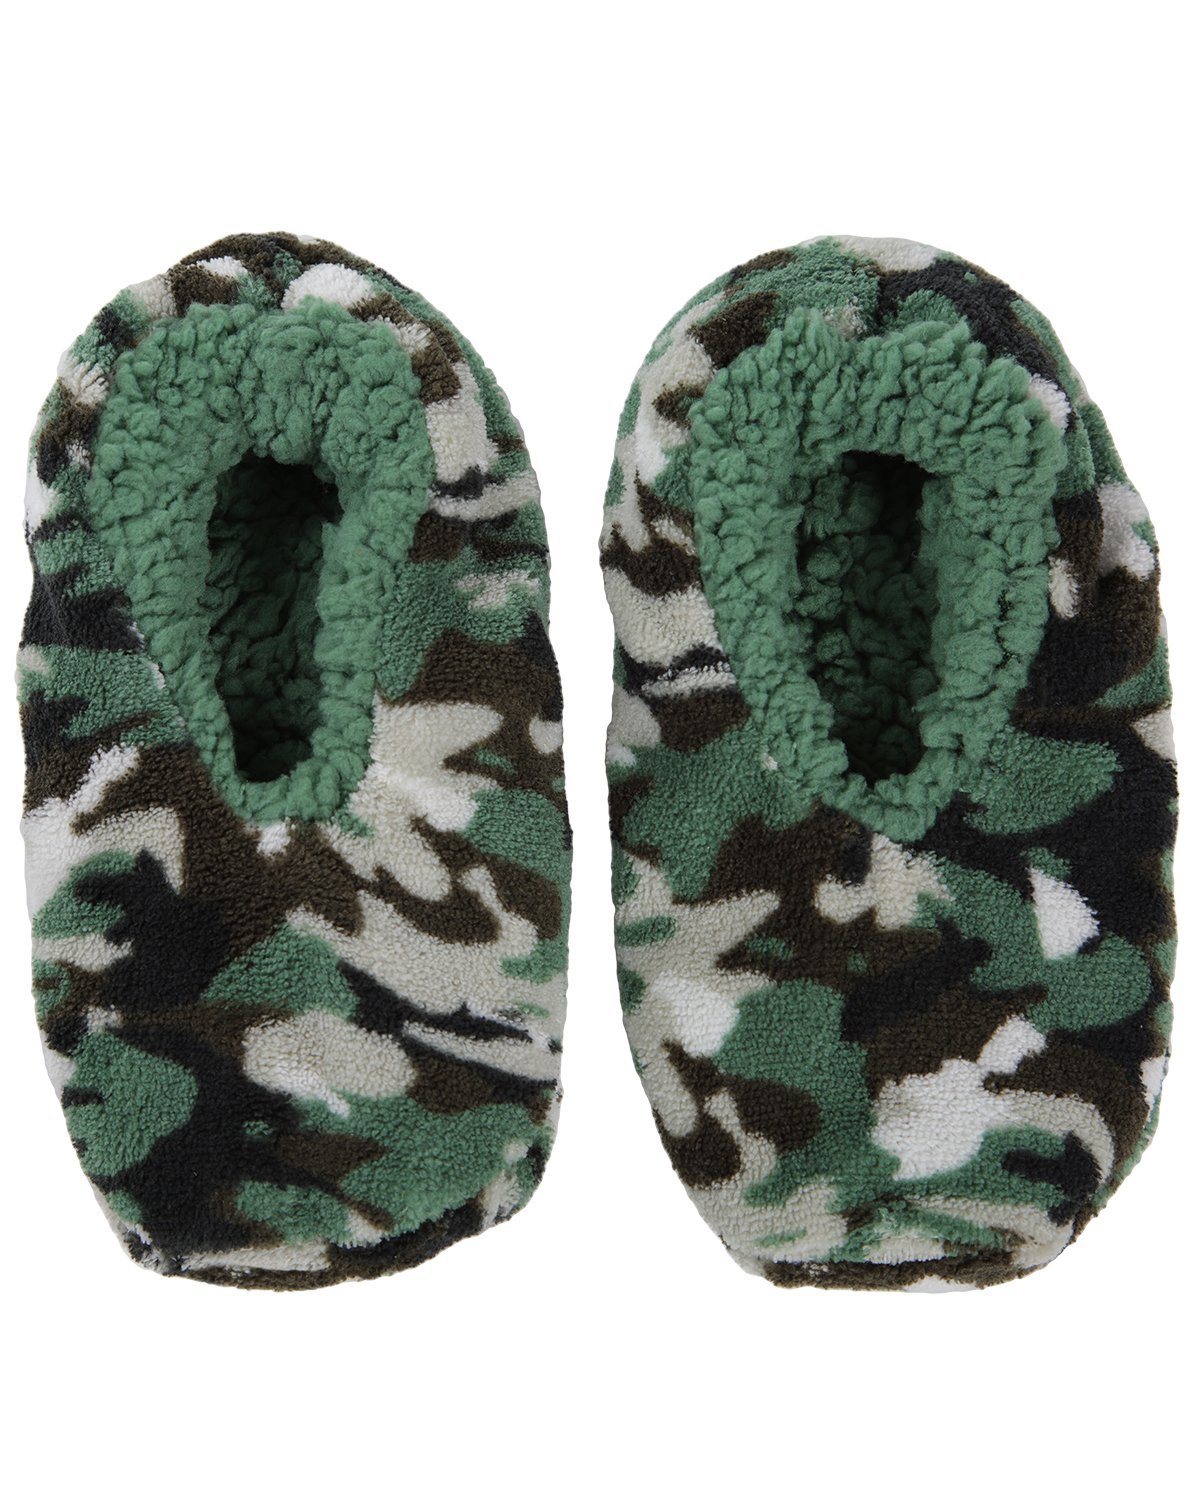 MeMoi Boys Camo Slippers | Little Boys Slippers and Slippers for Kids M / Green MKF5 2538